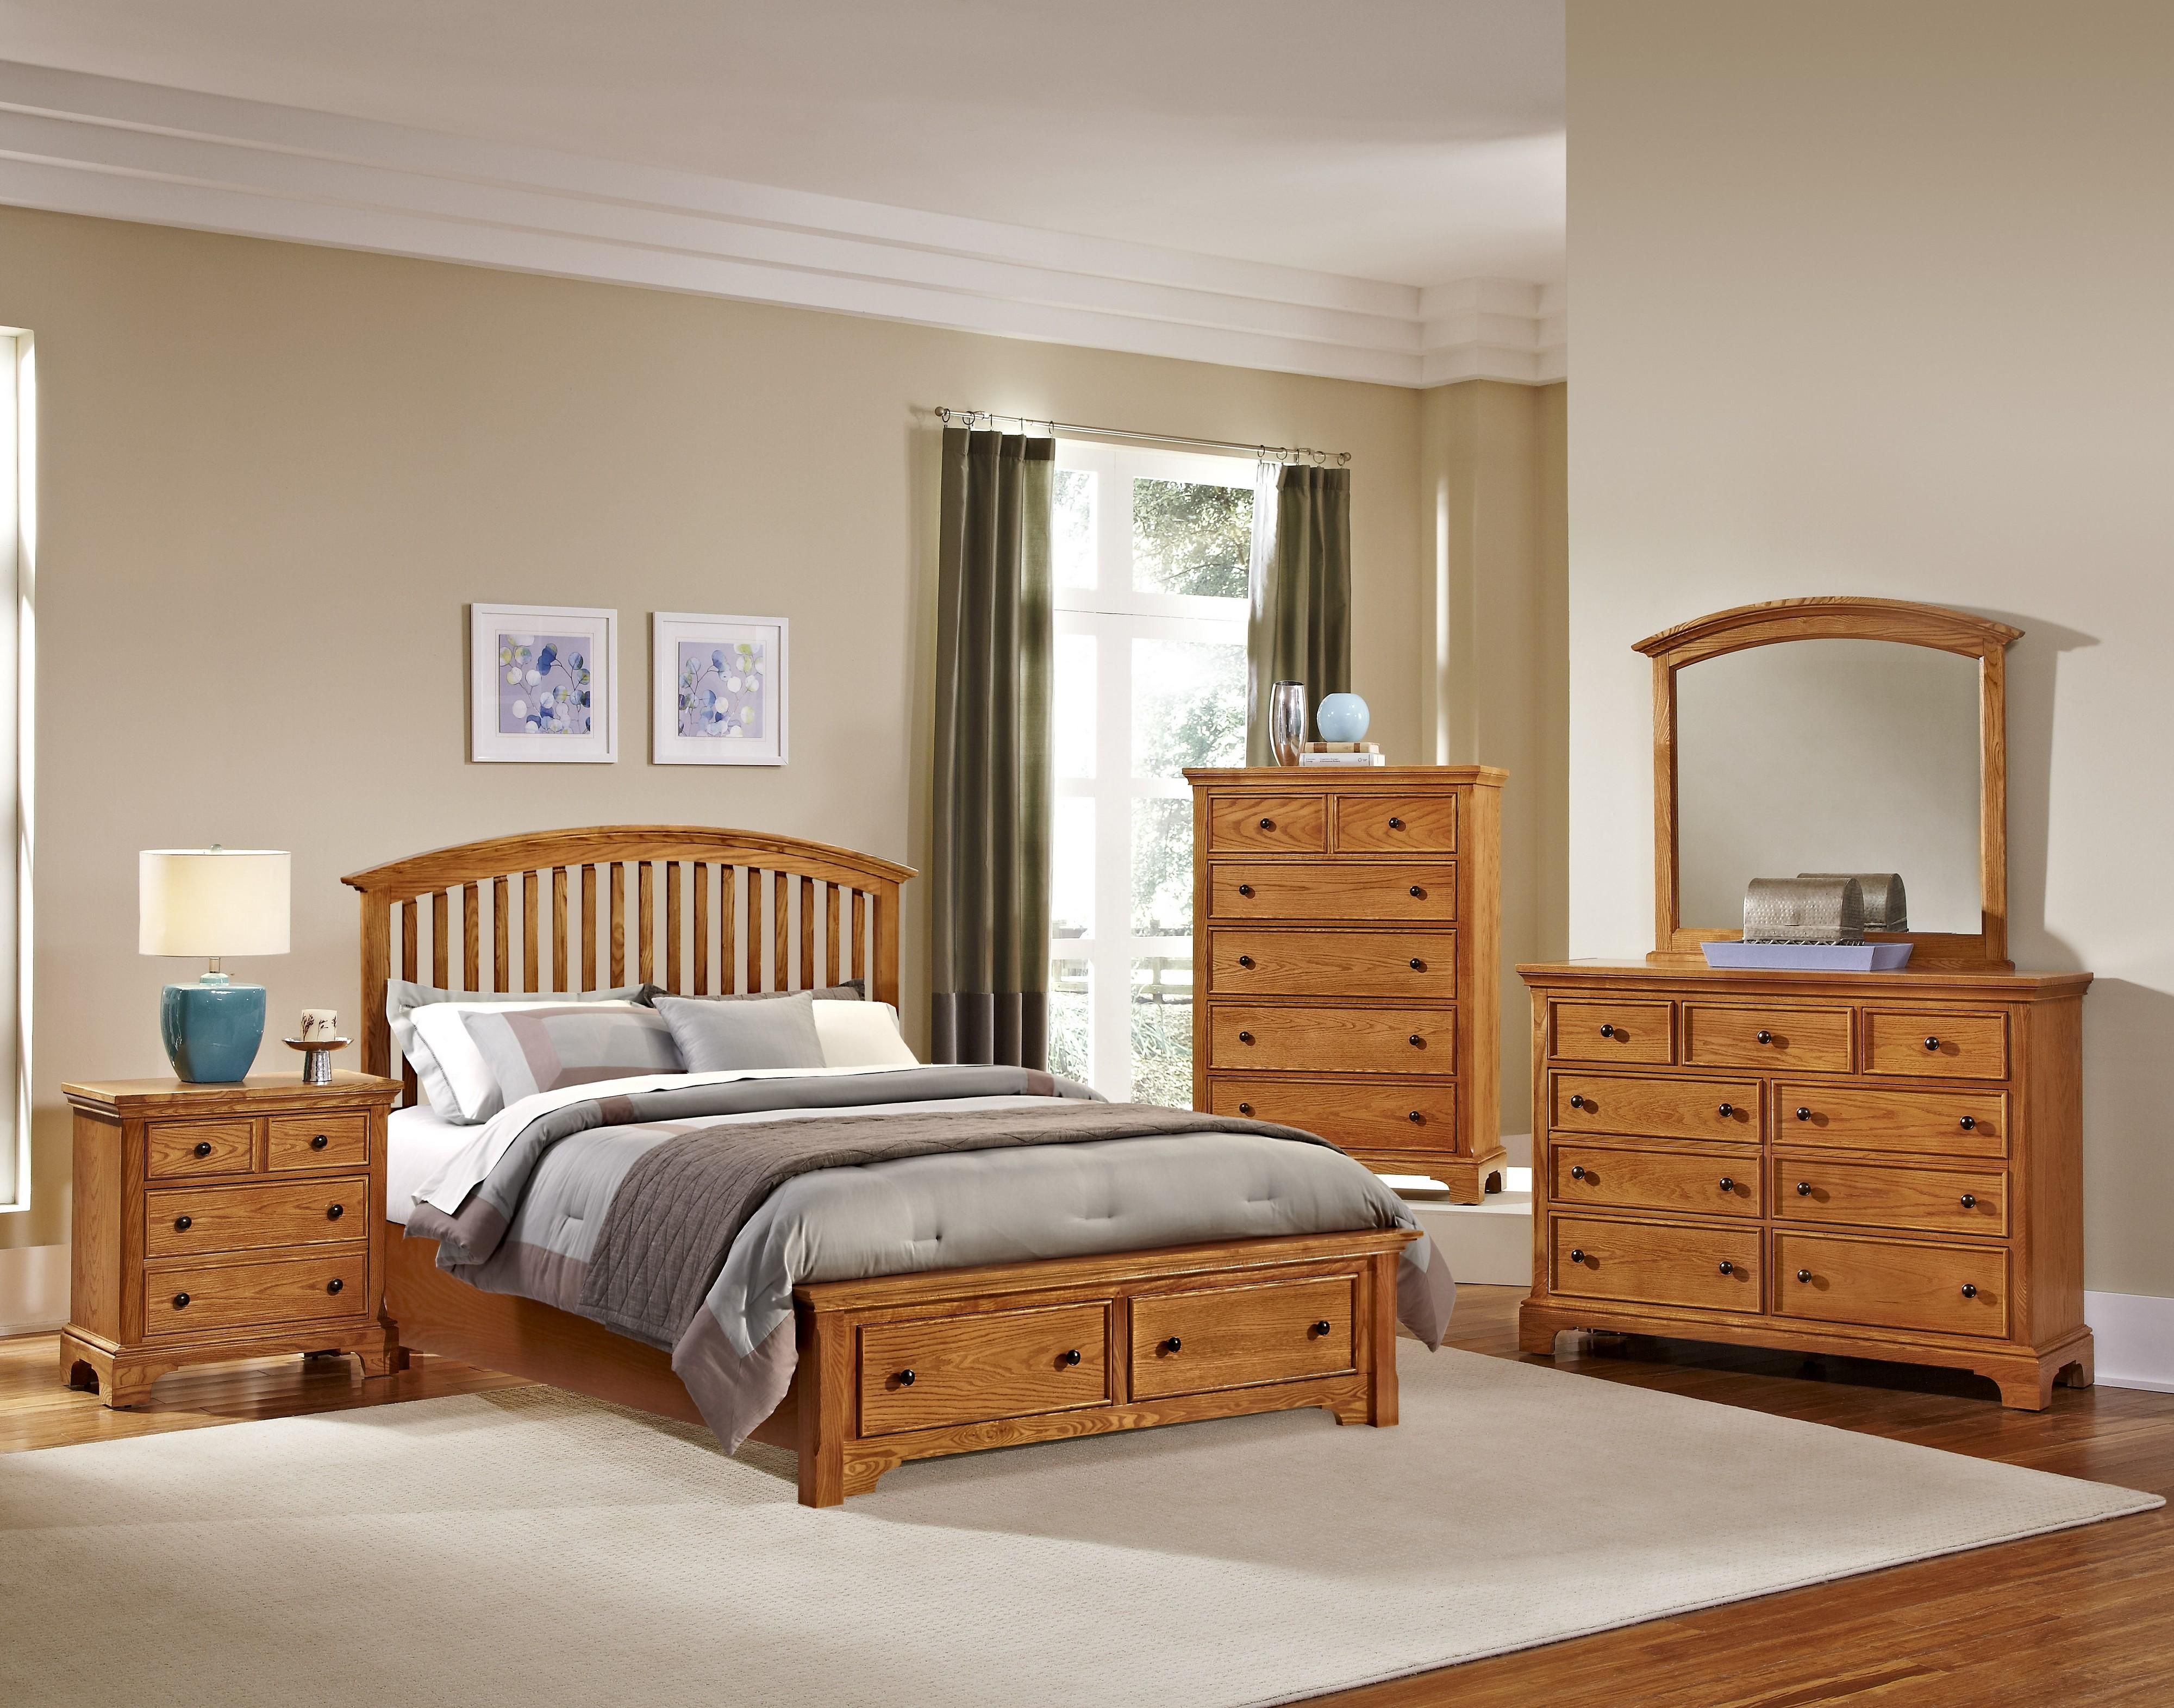 Vaughan Bassett Forsyth Queen Bedroom Group - Item Number: BB75 Q Bedroom Group 4